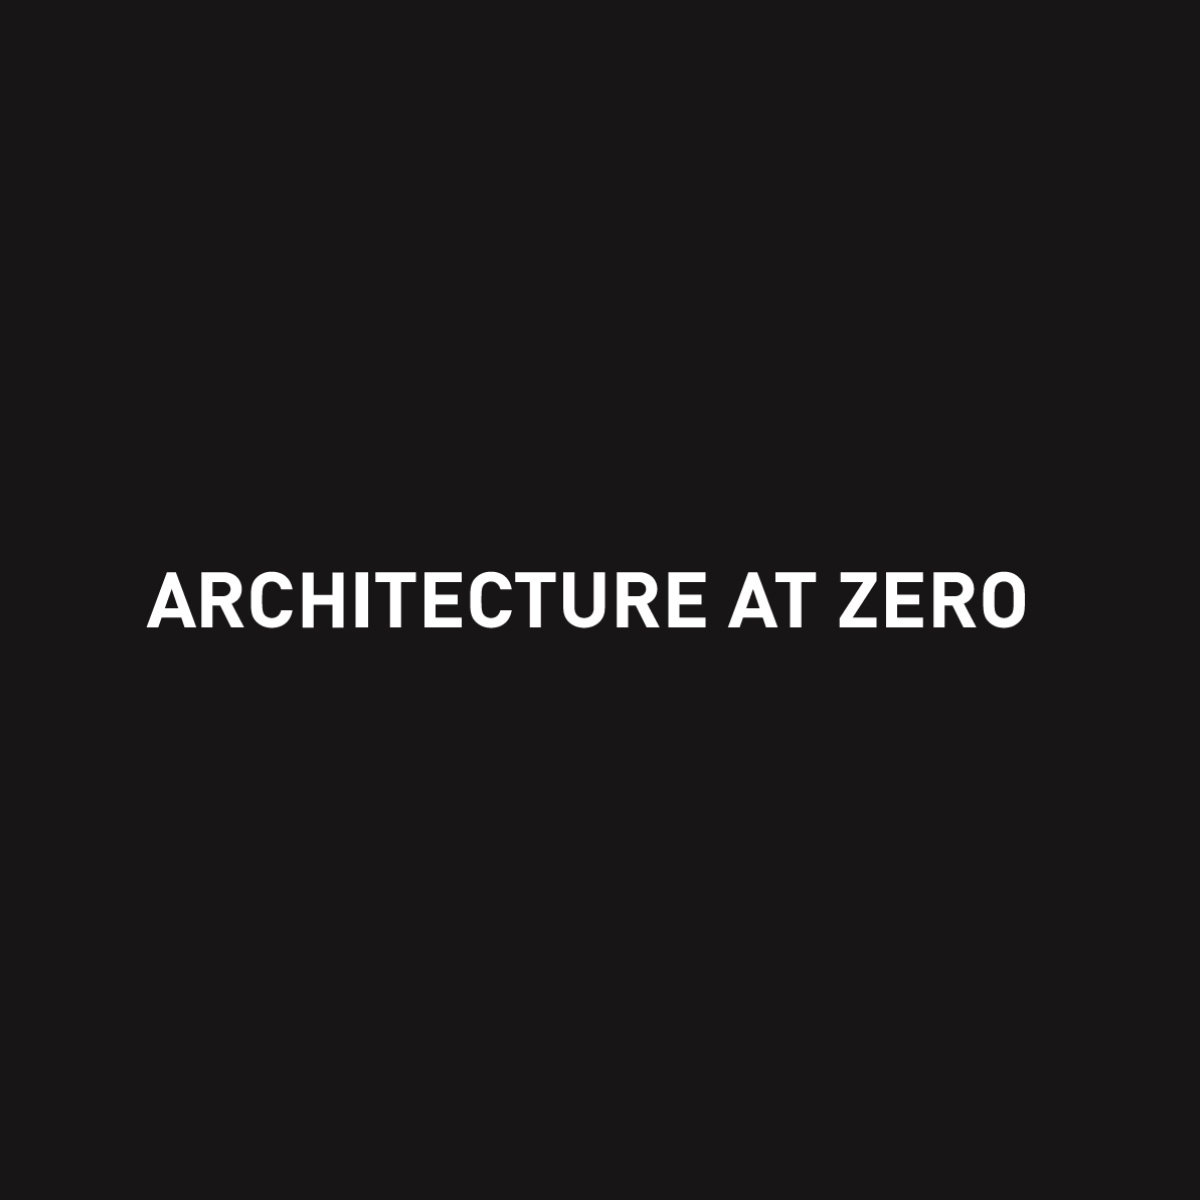 AIA CA Announces Winners of 2020 Architecture at Zero Competition